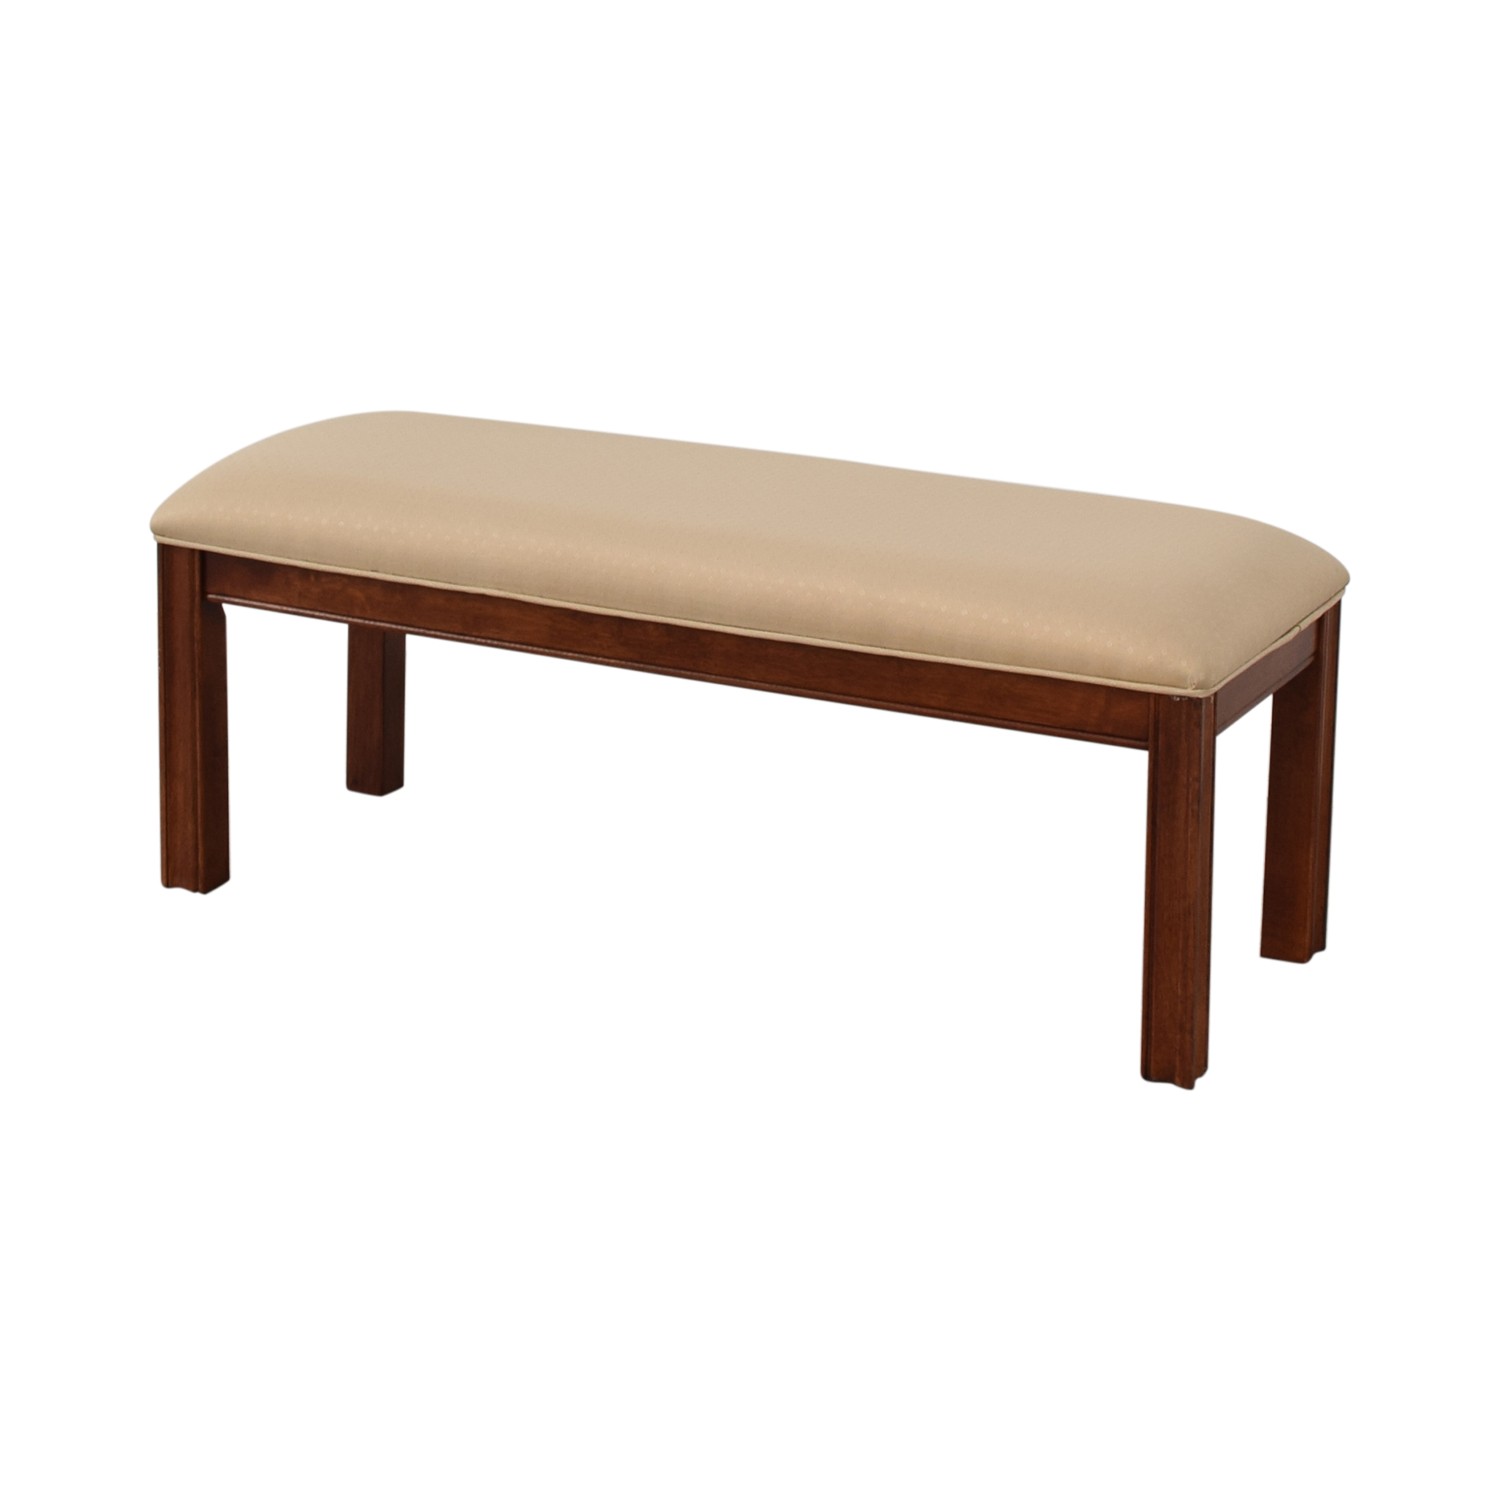 Beige Upholstered Bench dimensions